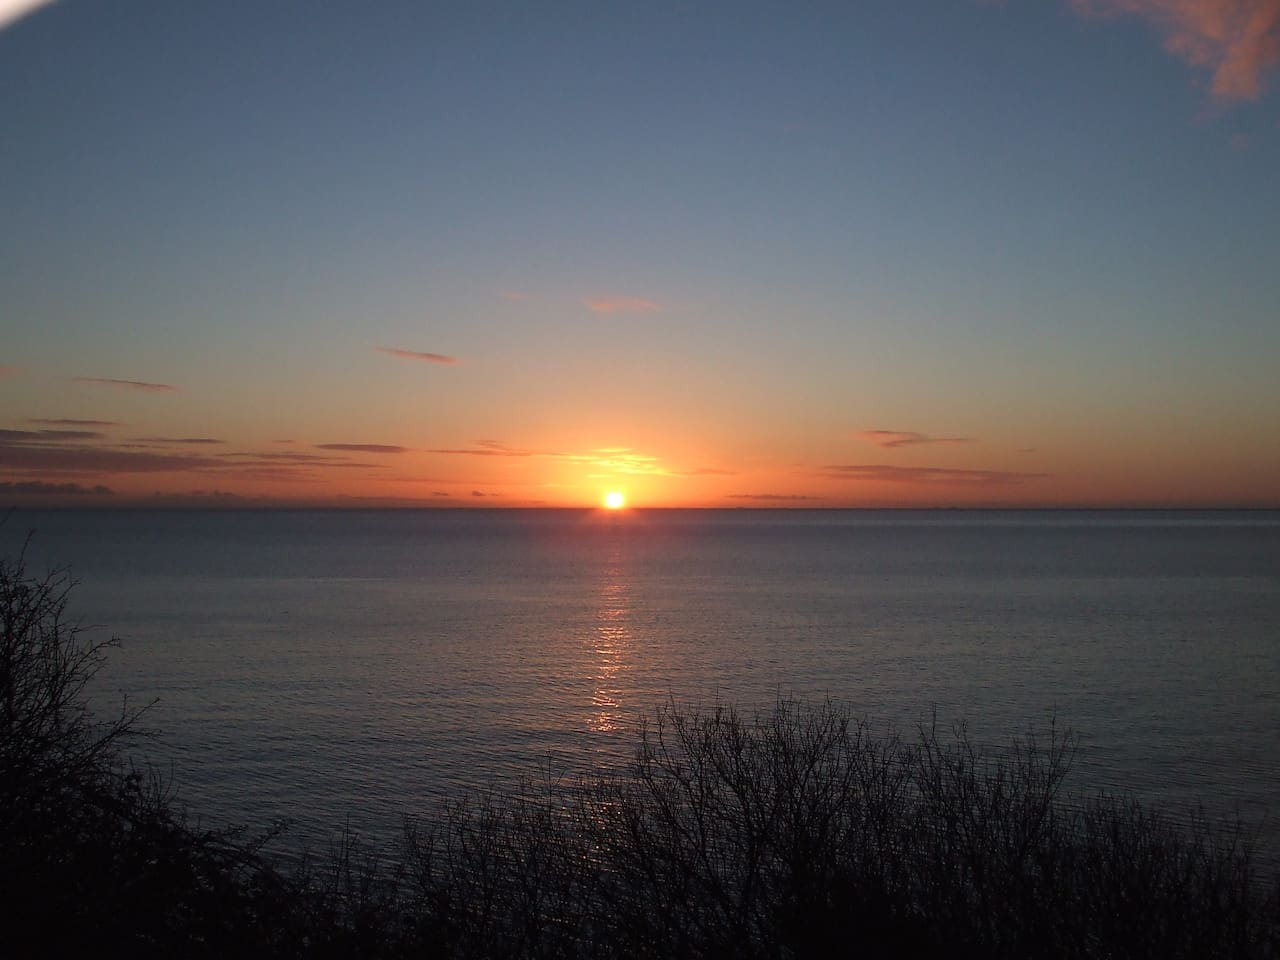 Sunrise over Carnlough Bay